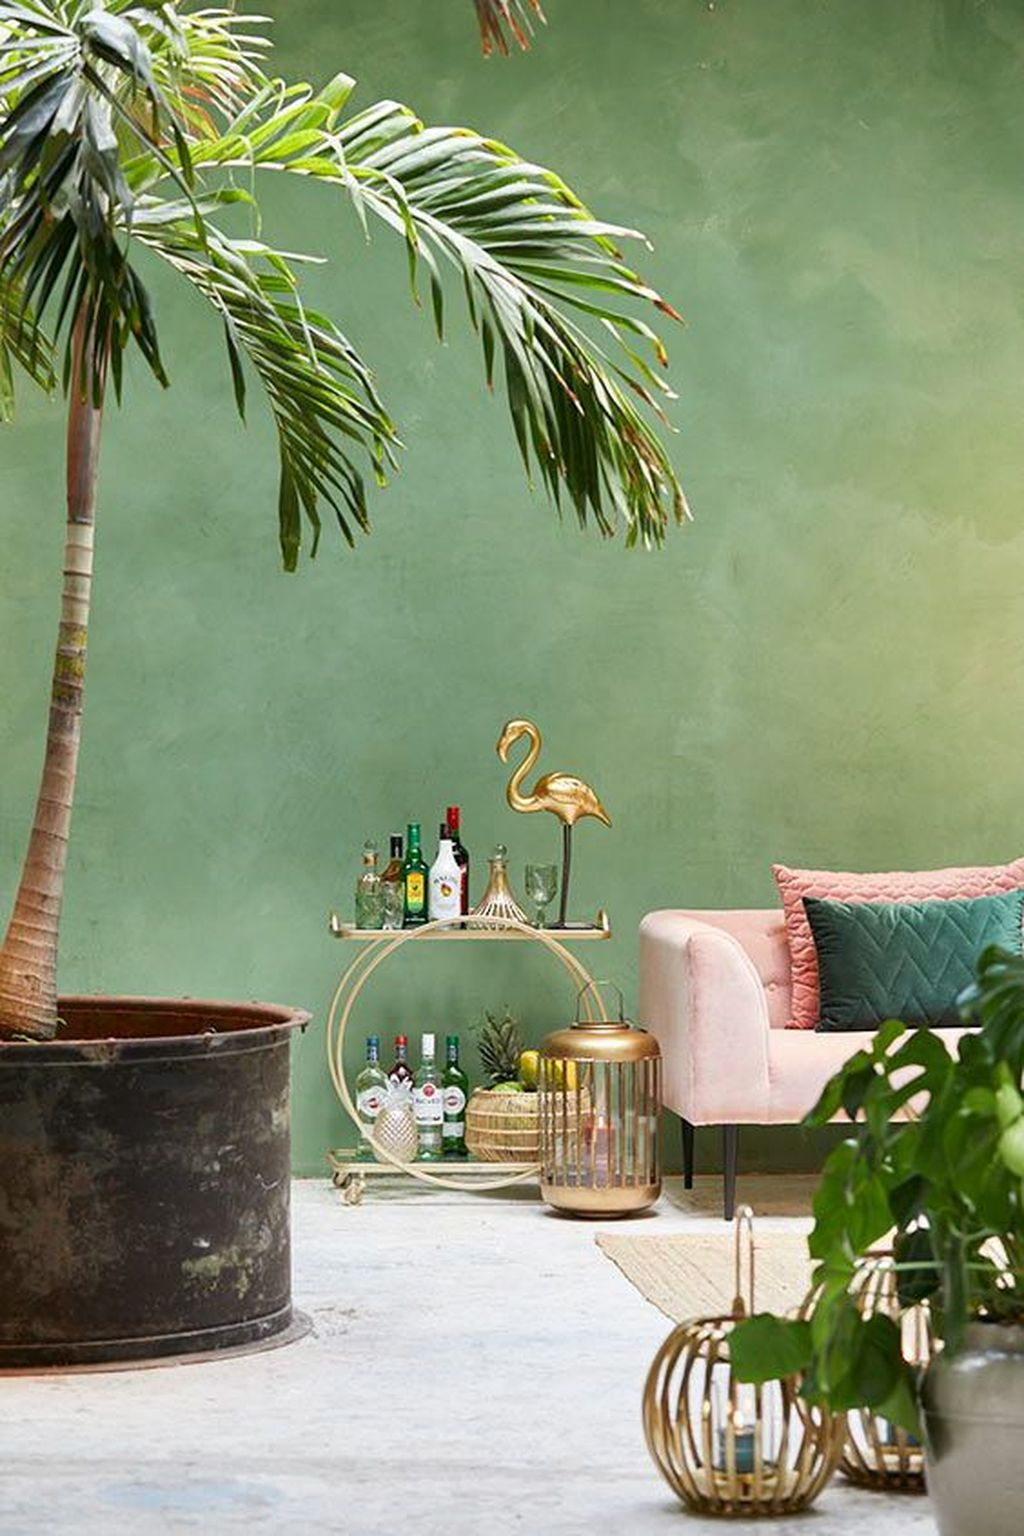 Best Summer Interior Design Ideas To Beautify Your Home 21